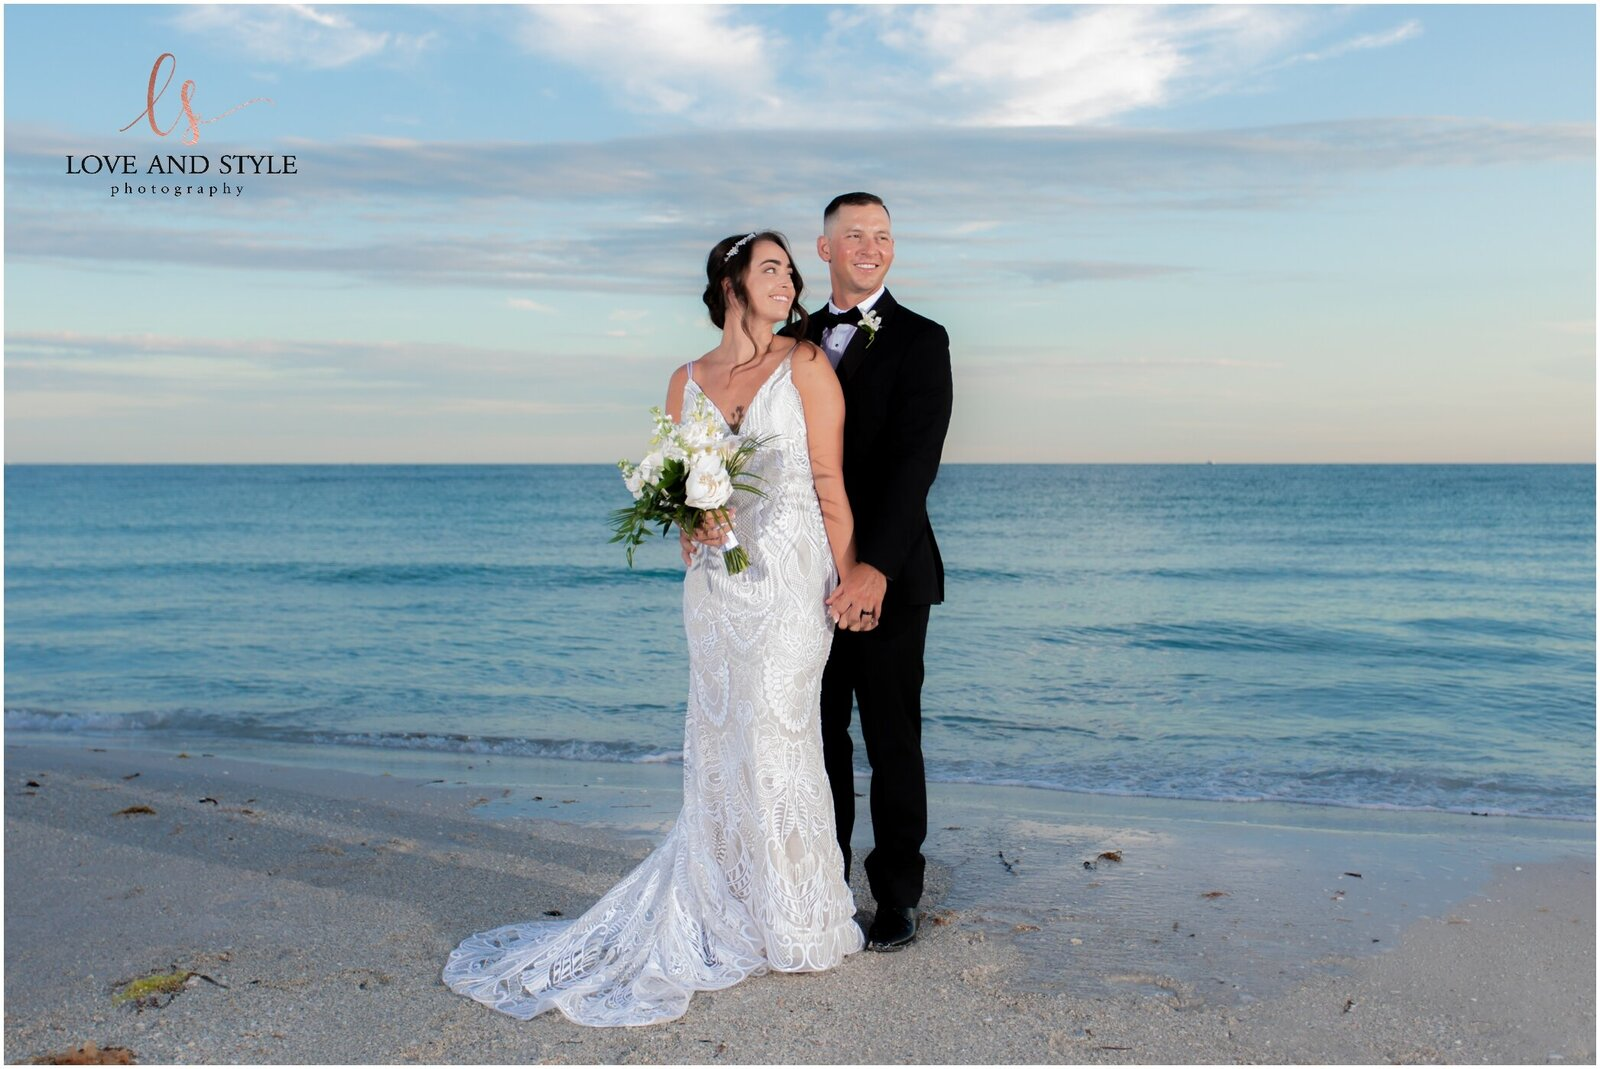 Love and Style Photography - Sarasota Photographer_2380